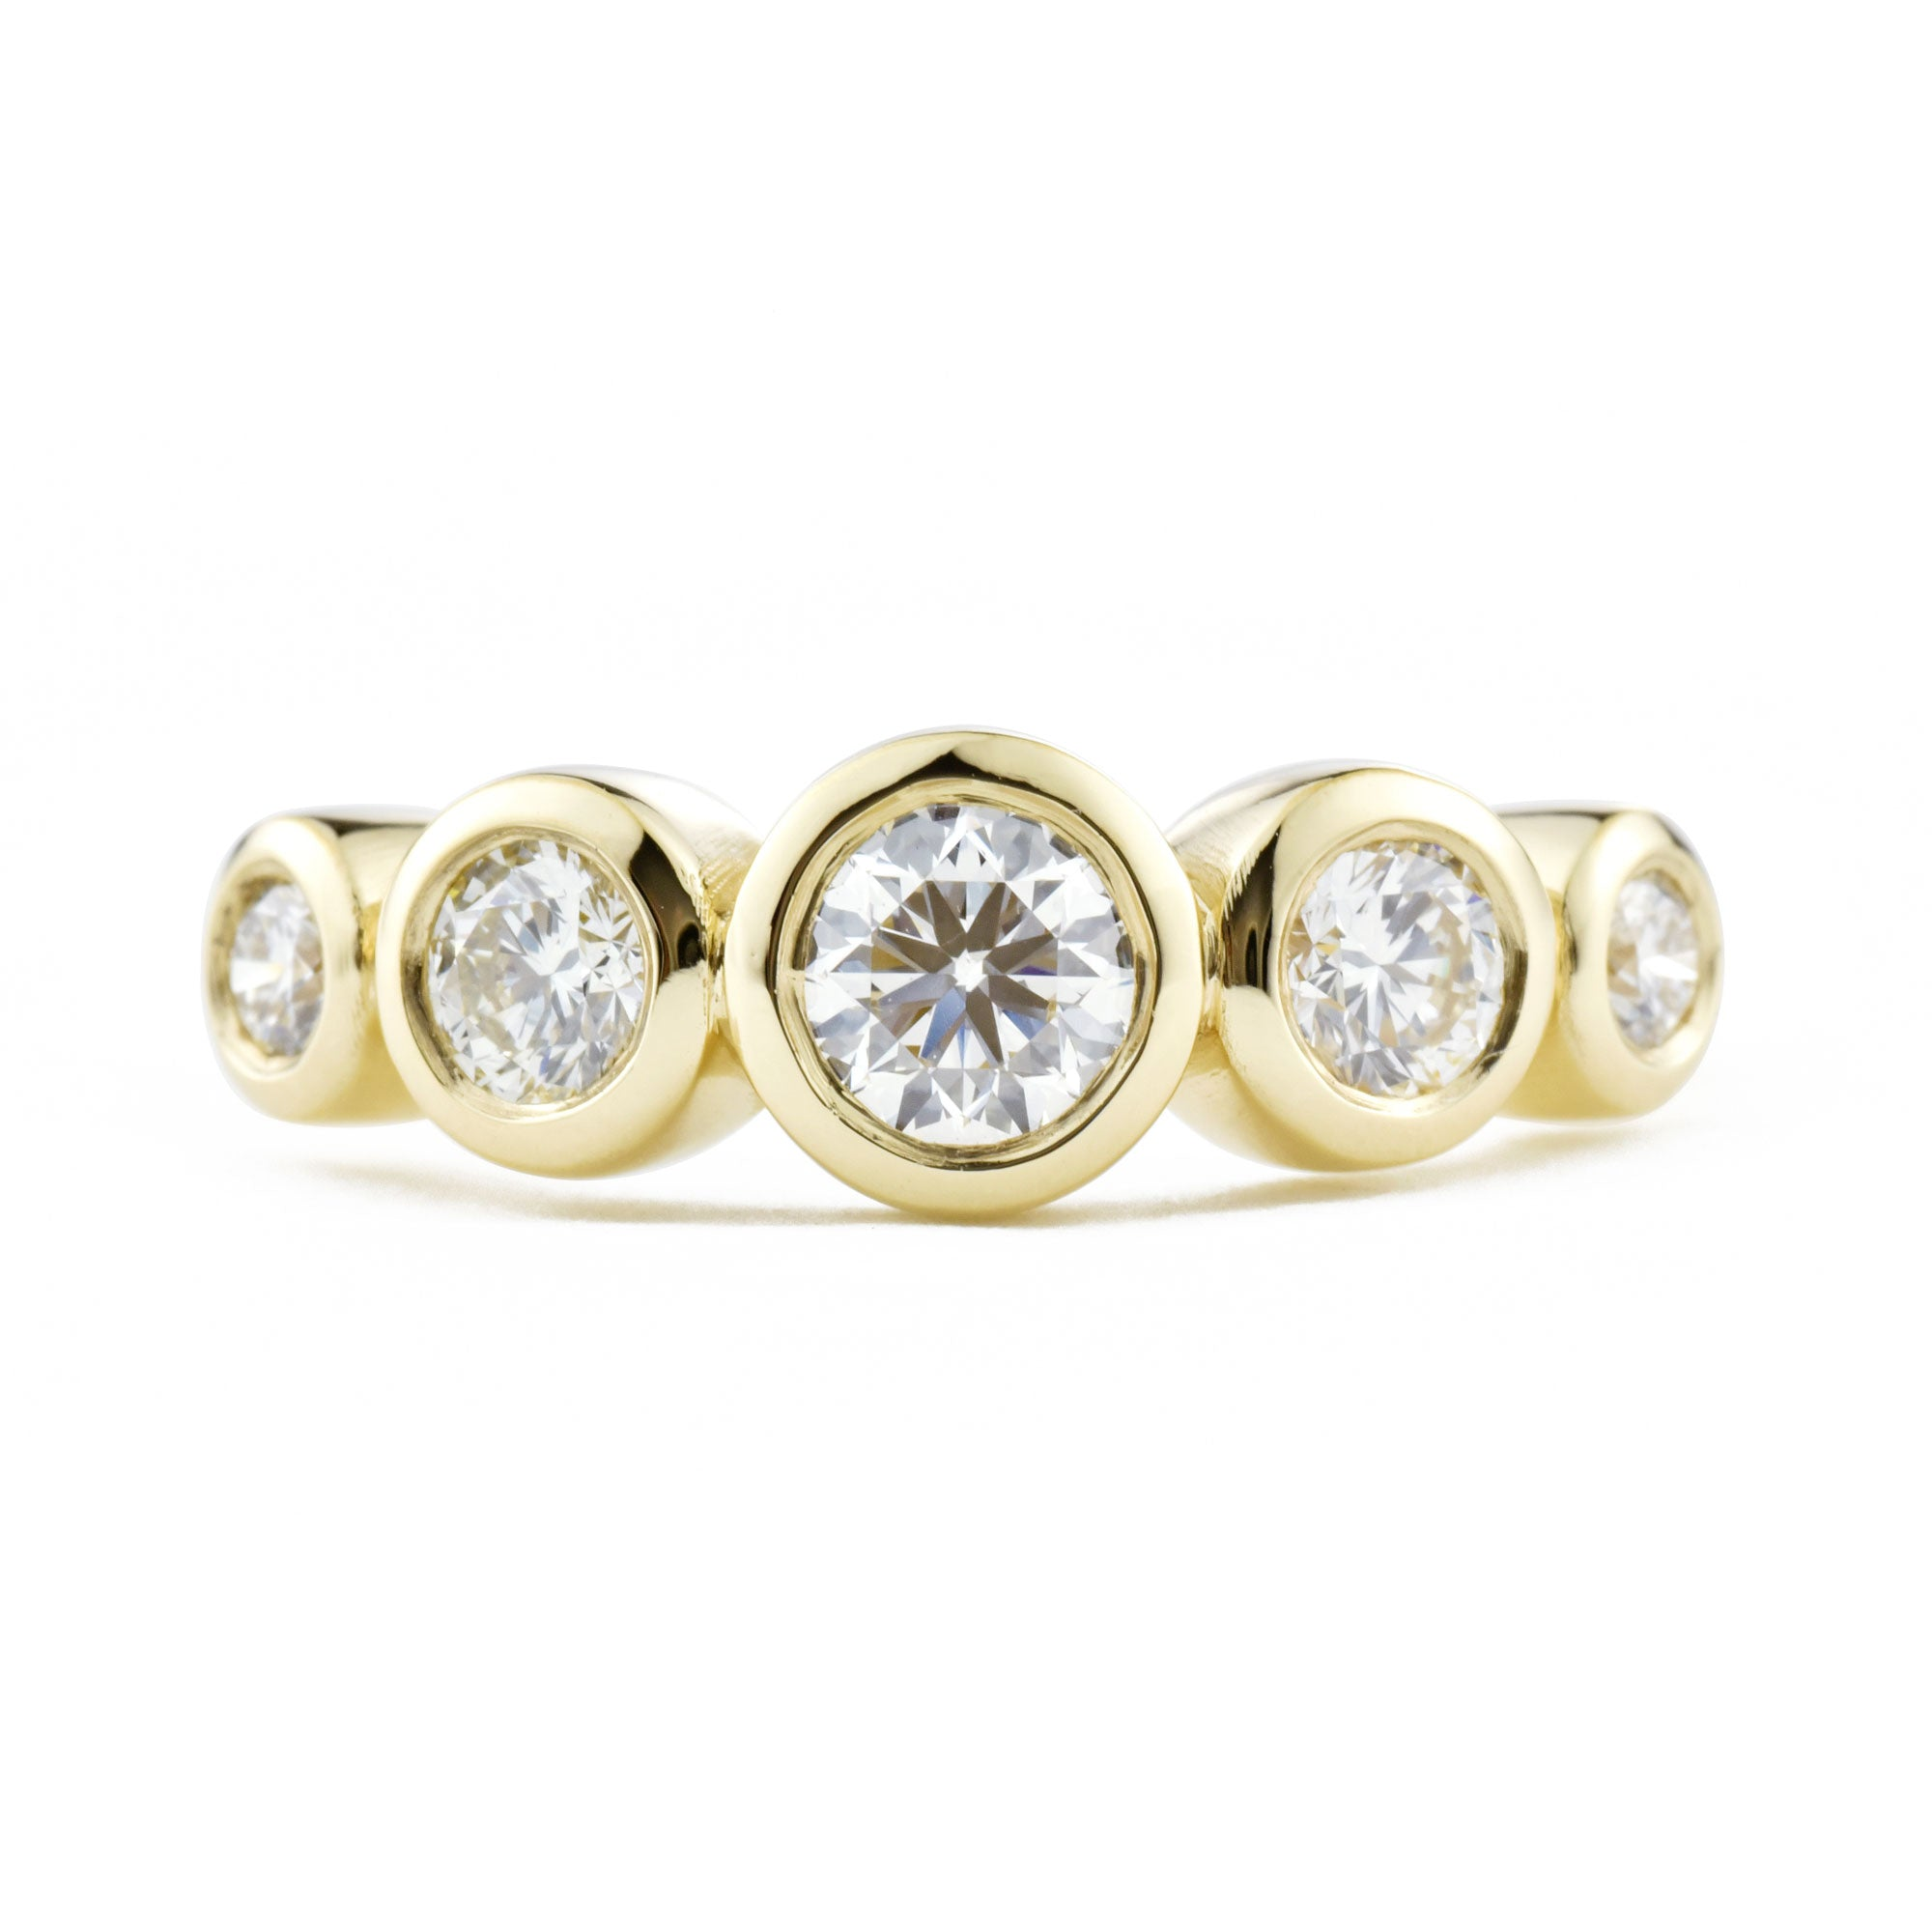 Solstice Five Stone Diamond Bezel Band shown from the front in yellow gold